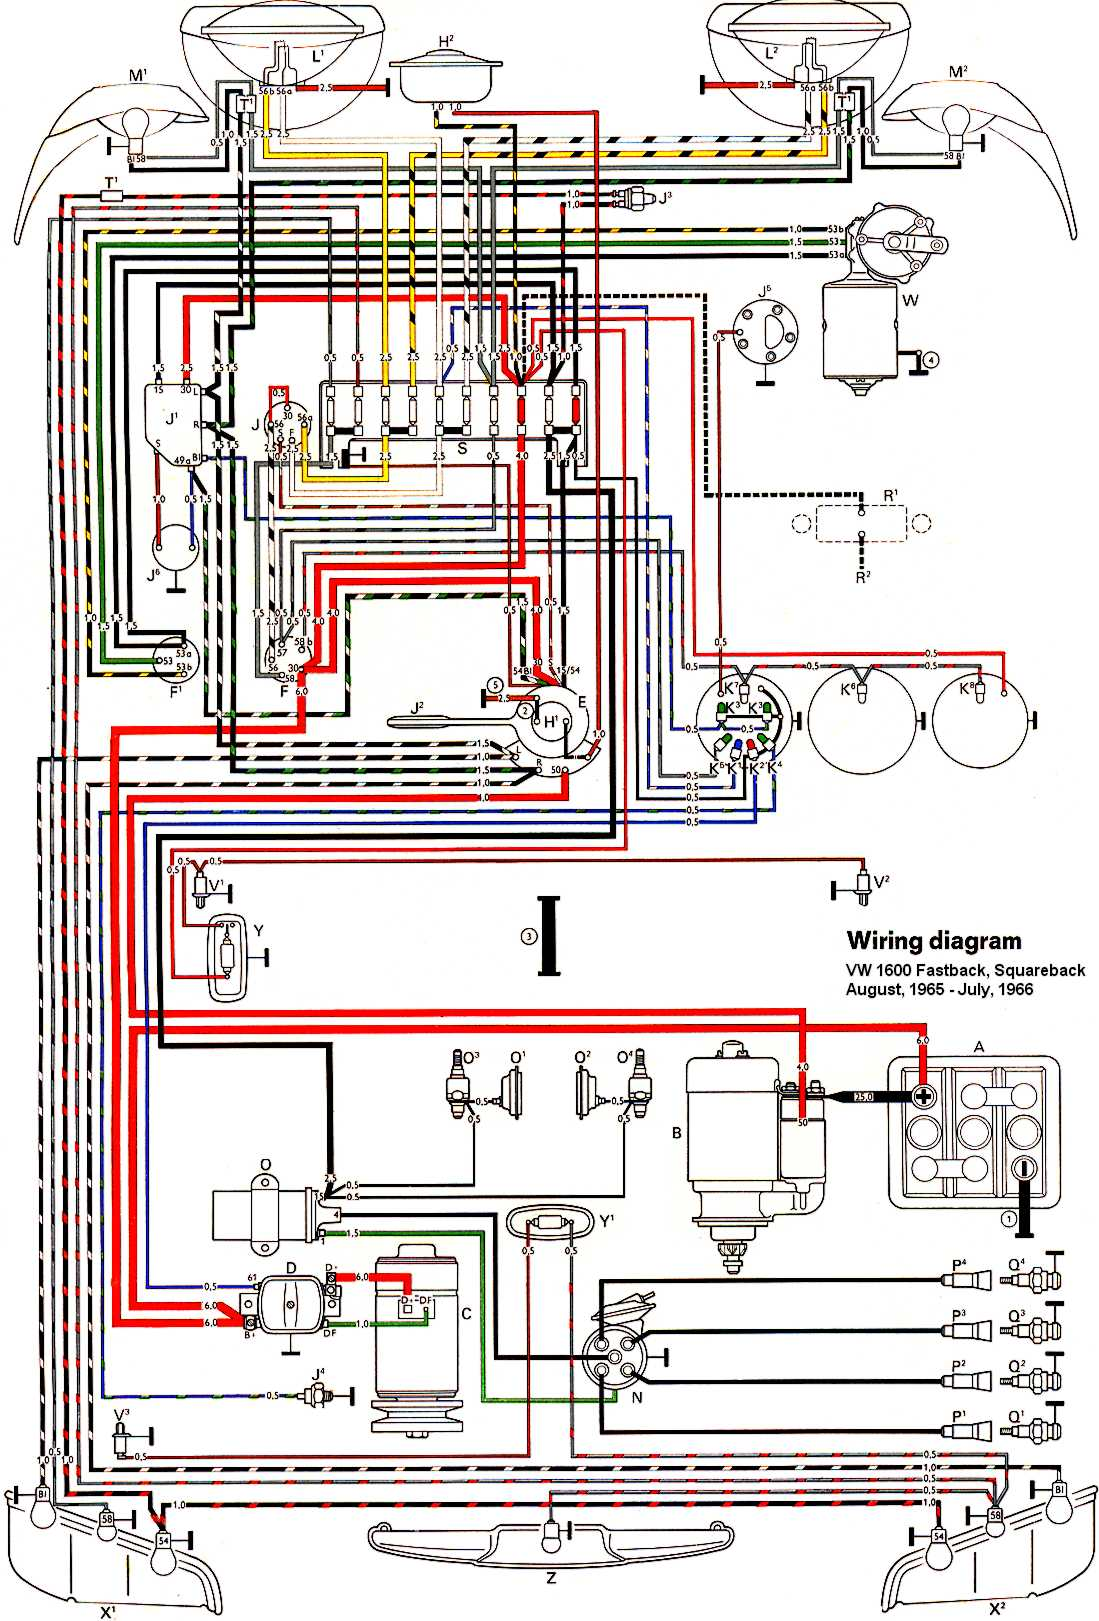 type3_1600_66 vw thing wiring diagram 1974 beetle heater diagram \u2022 wiring 1971 vw bus wiring diagram at mifinder.co